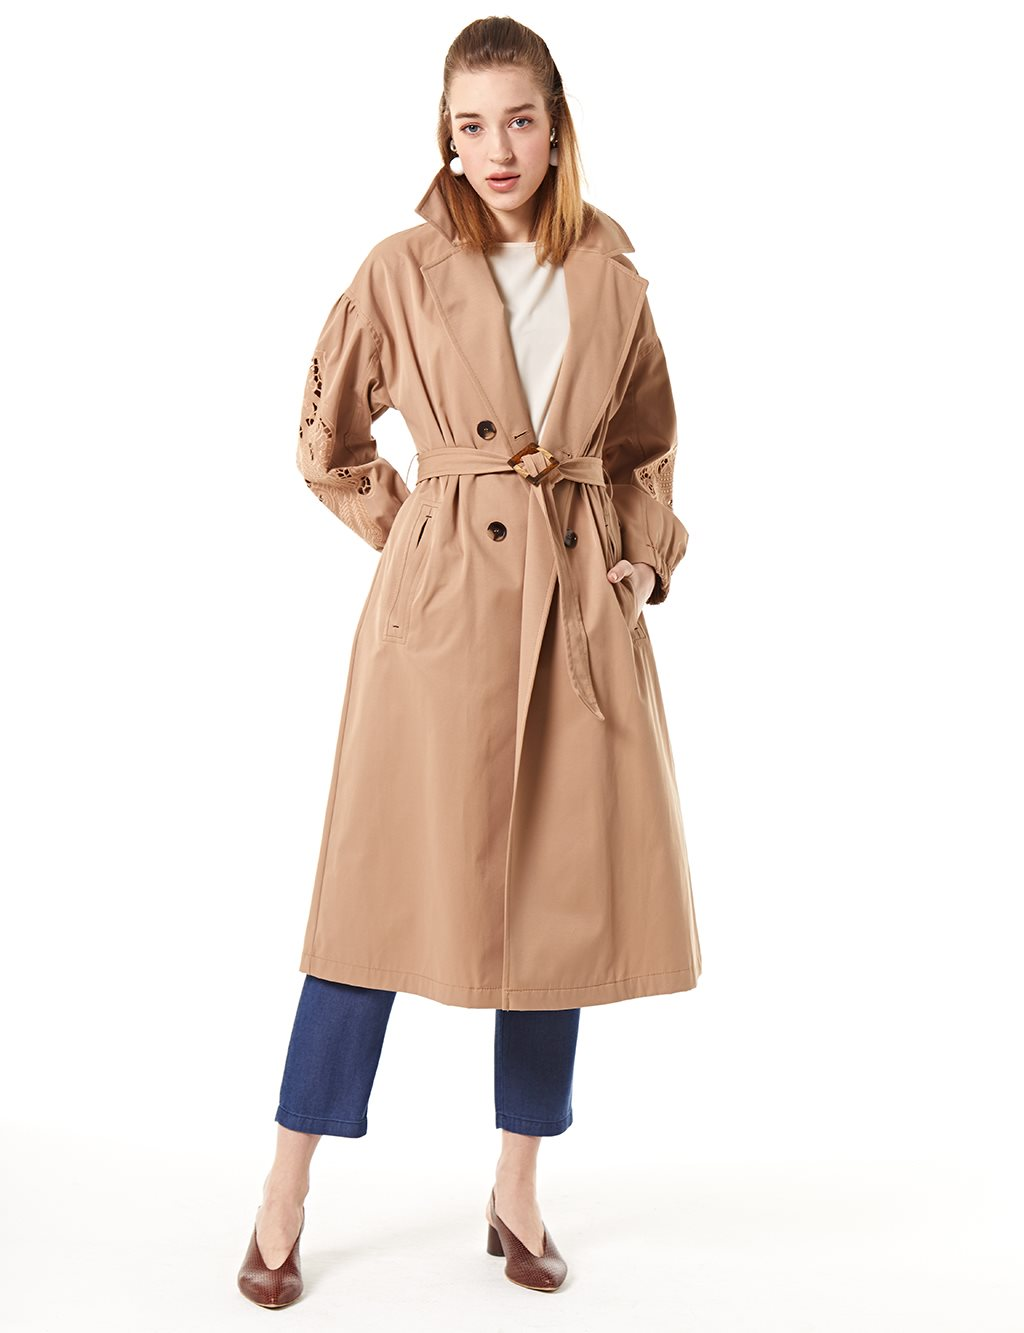 Trenchcoat With Belt B20 14007 Beige